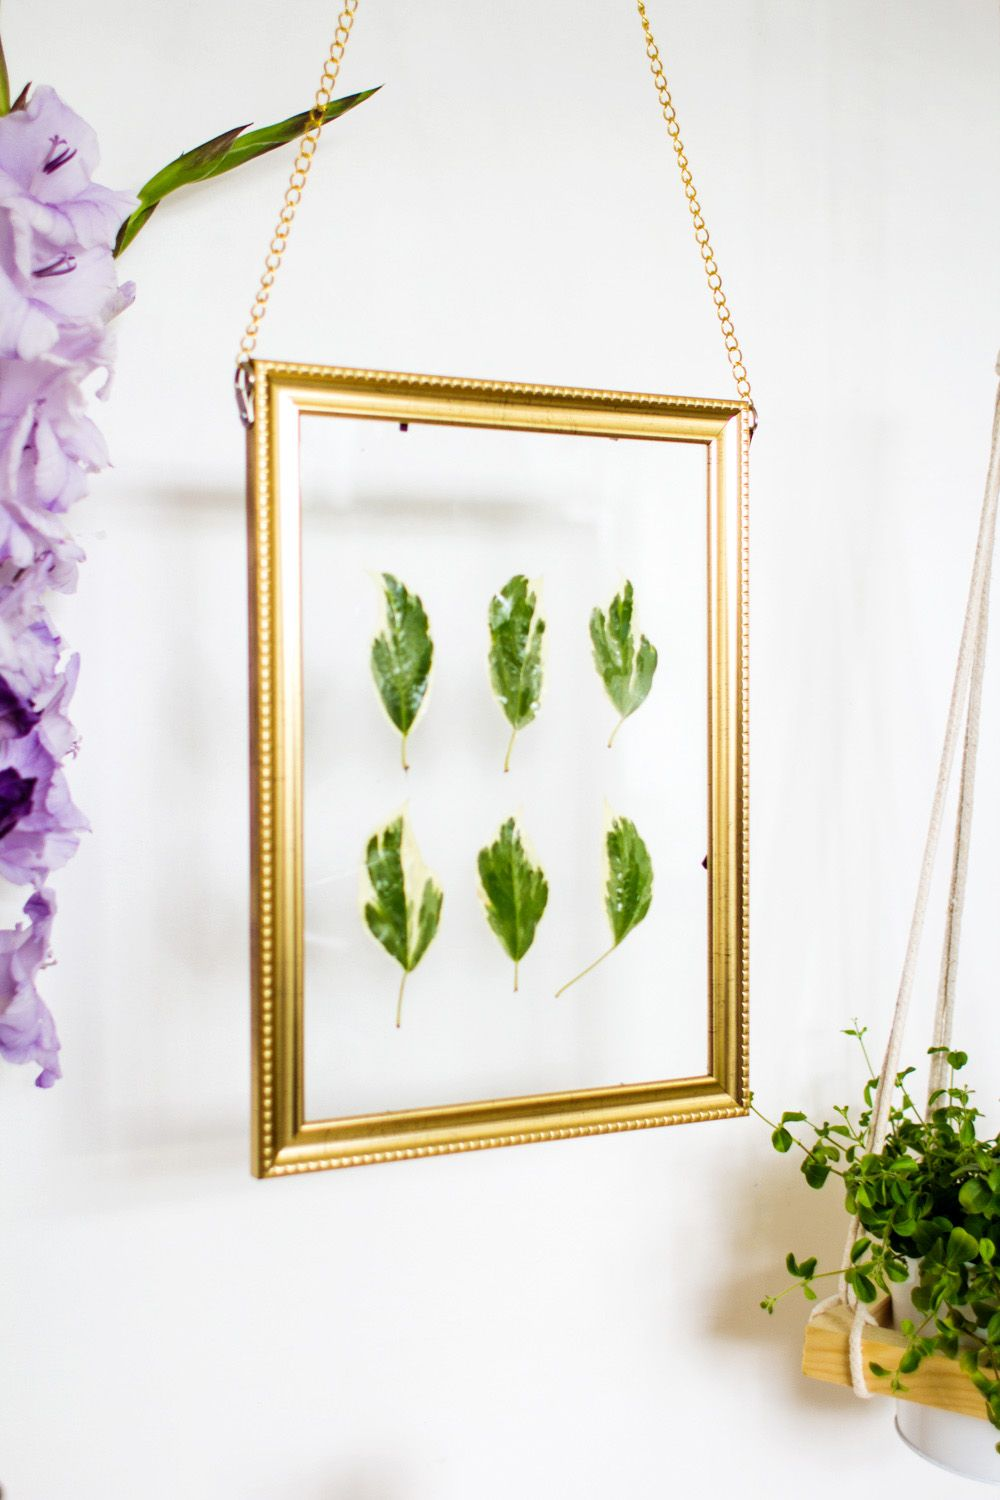 Hanging Gold Frame Leaf Art Angle View